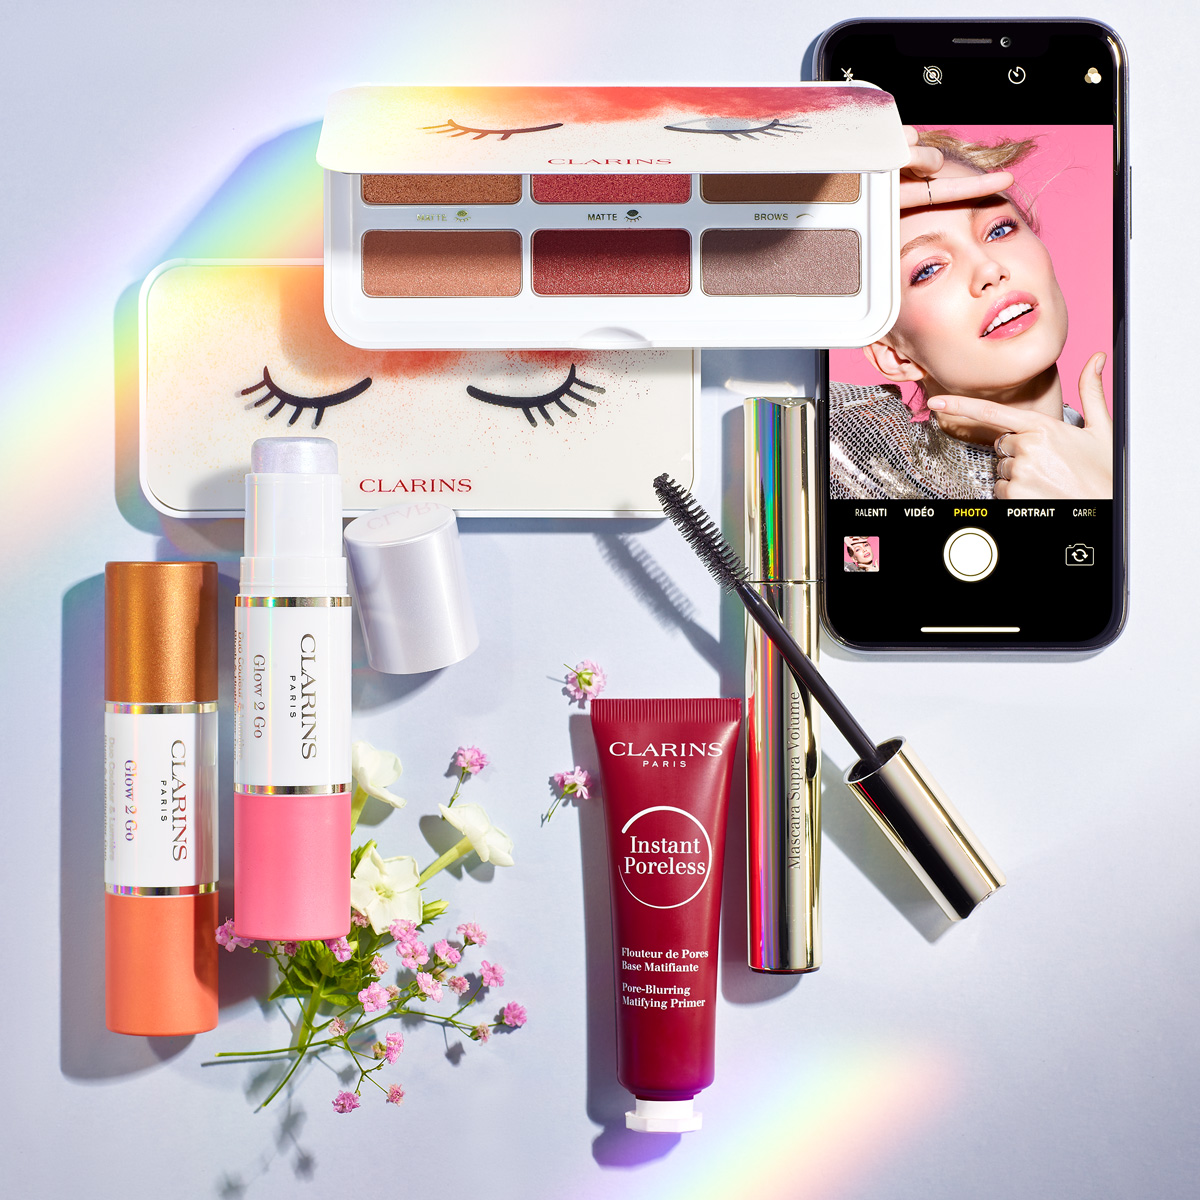 2019_spring_makeup_collection_rainbows_social_networks.jpg